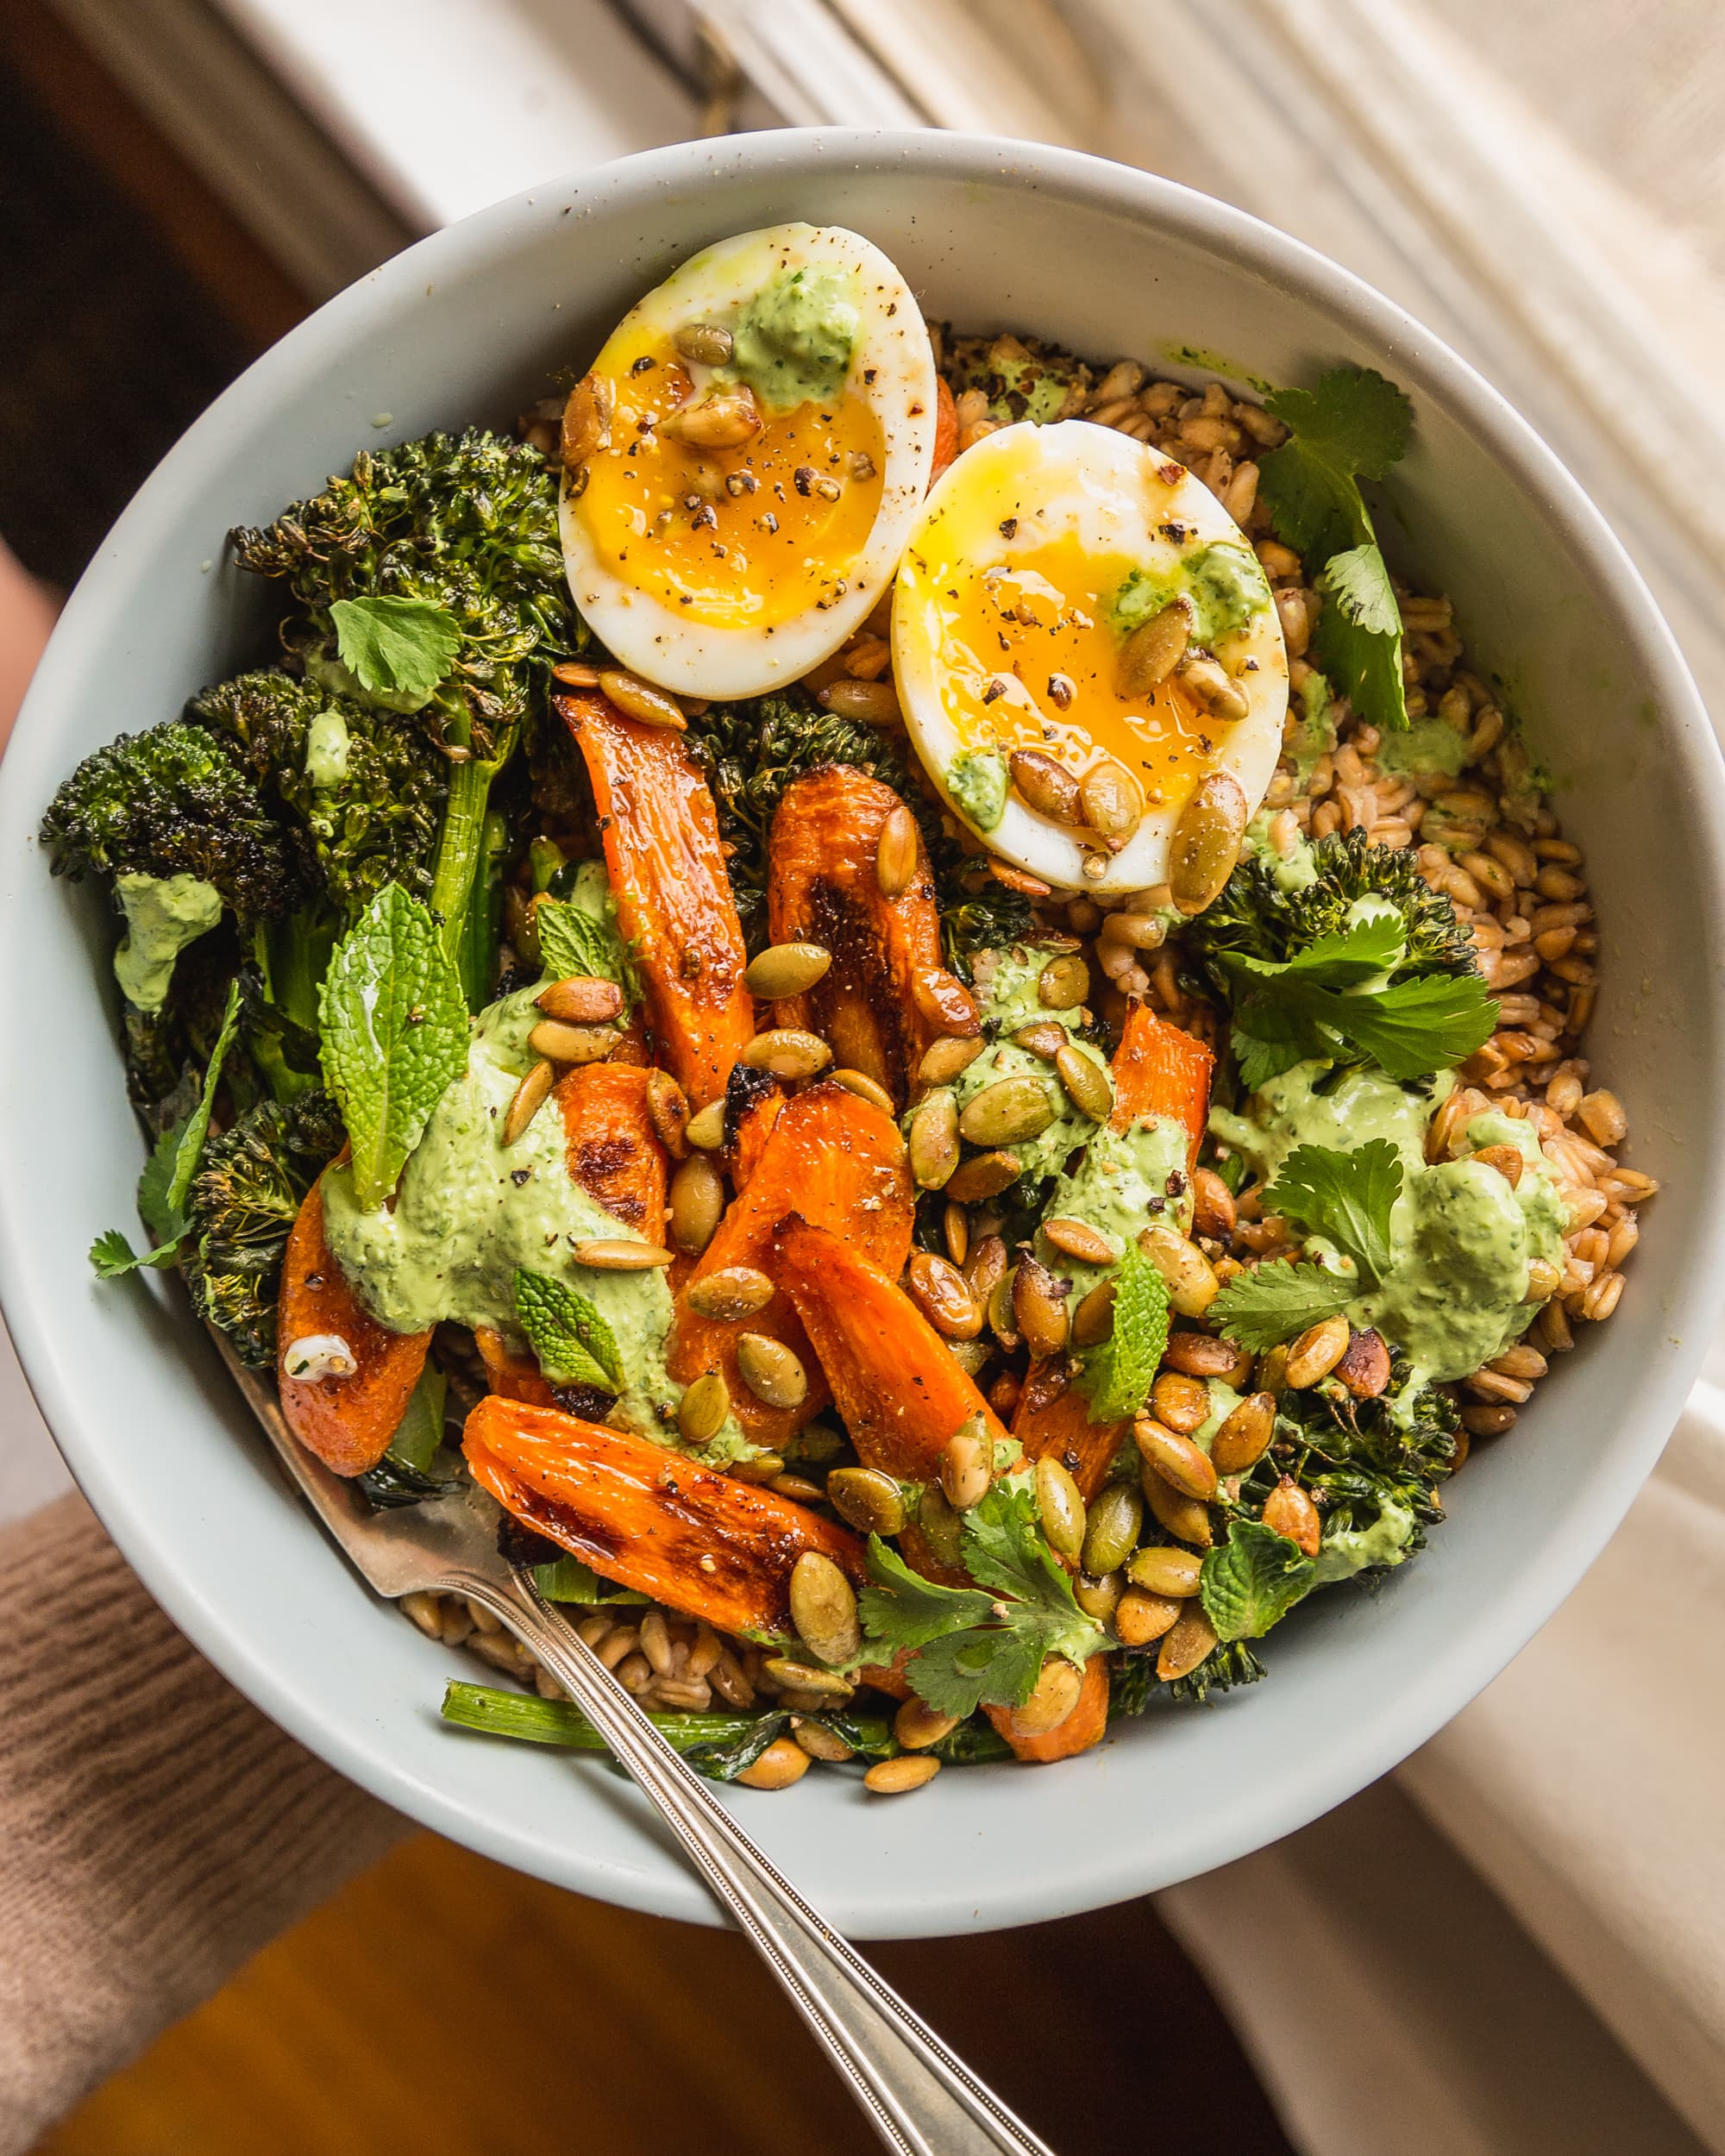 Recipe: Farro with Caramelized Carrots, Crispy Broccolini, and Herby Yogurt Dressing